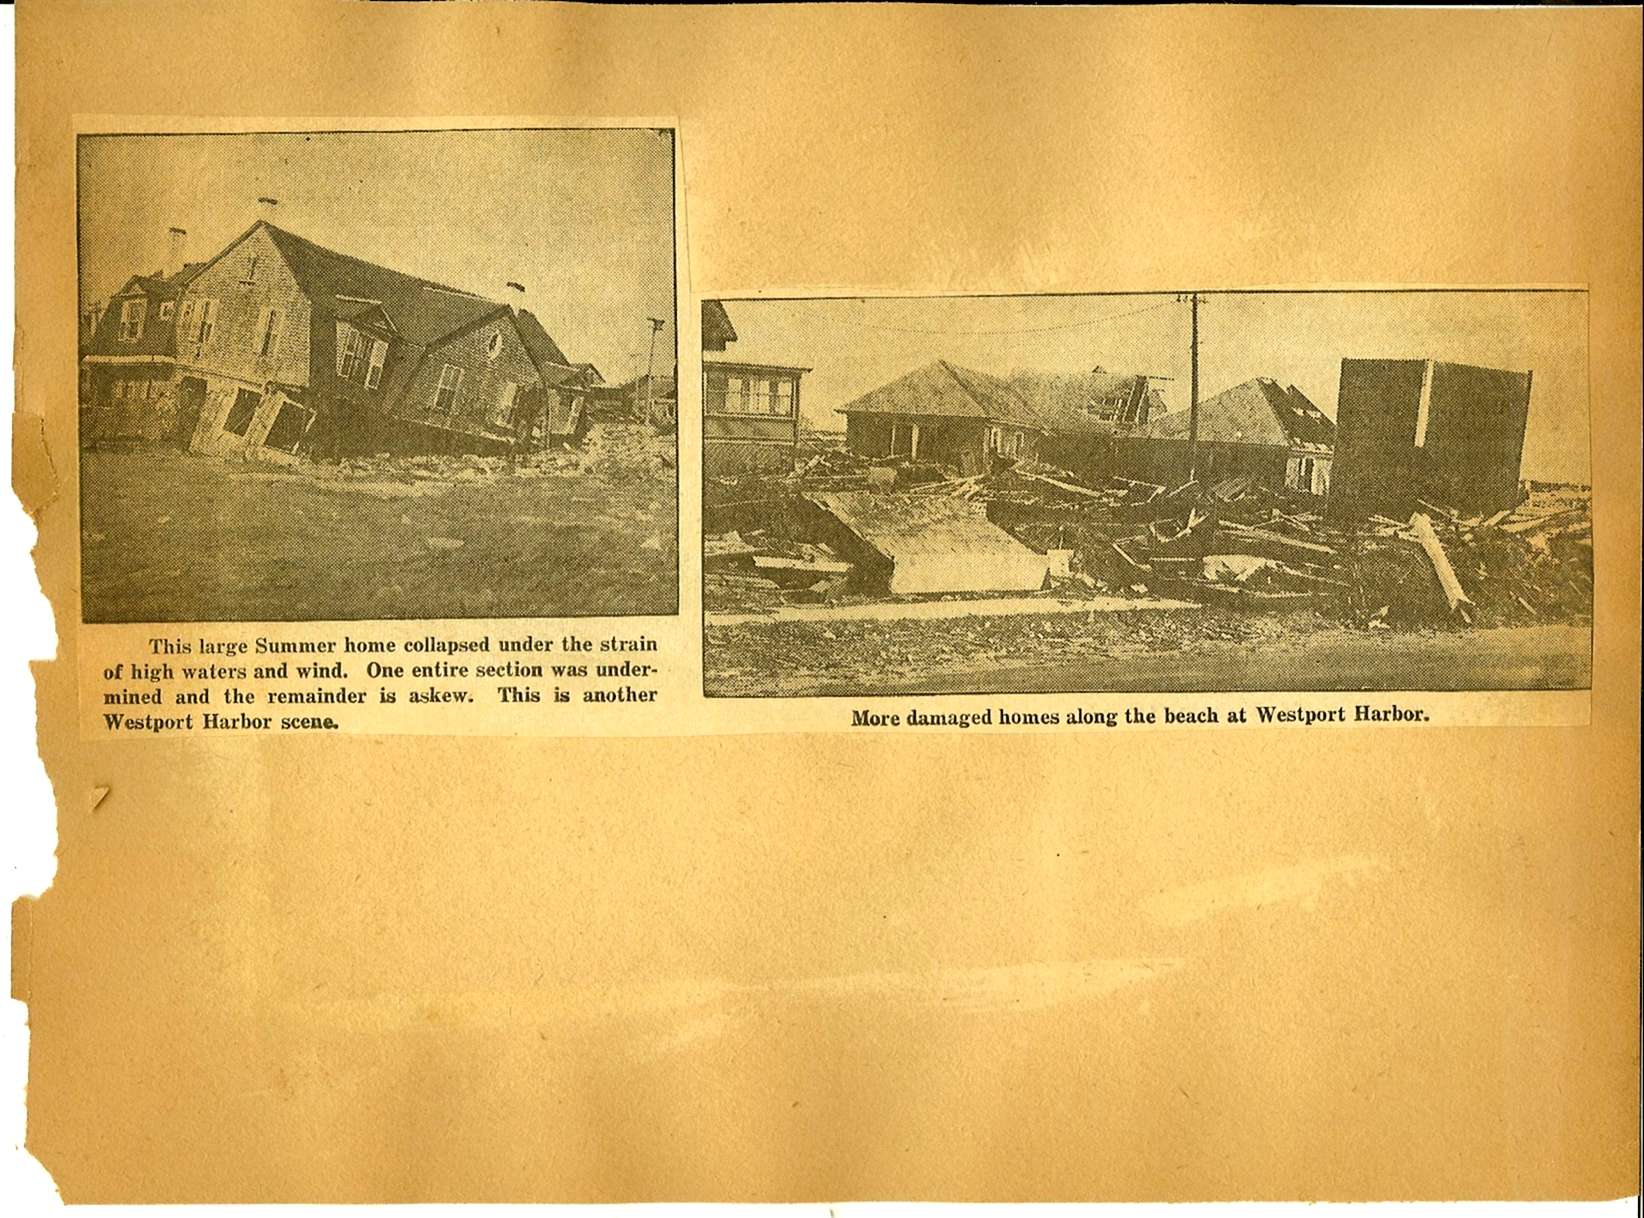 The 1938 Hurricane photos p32